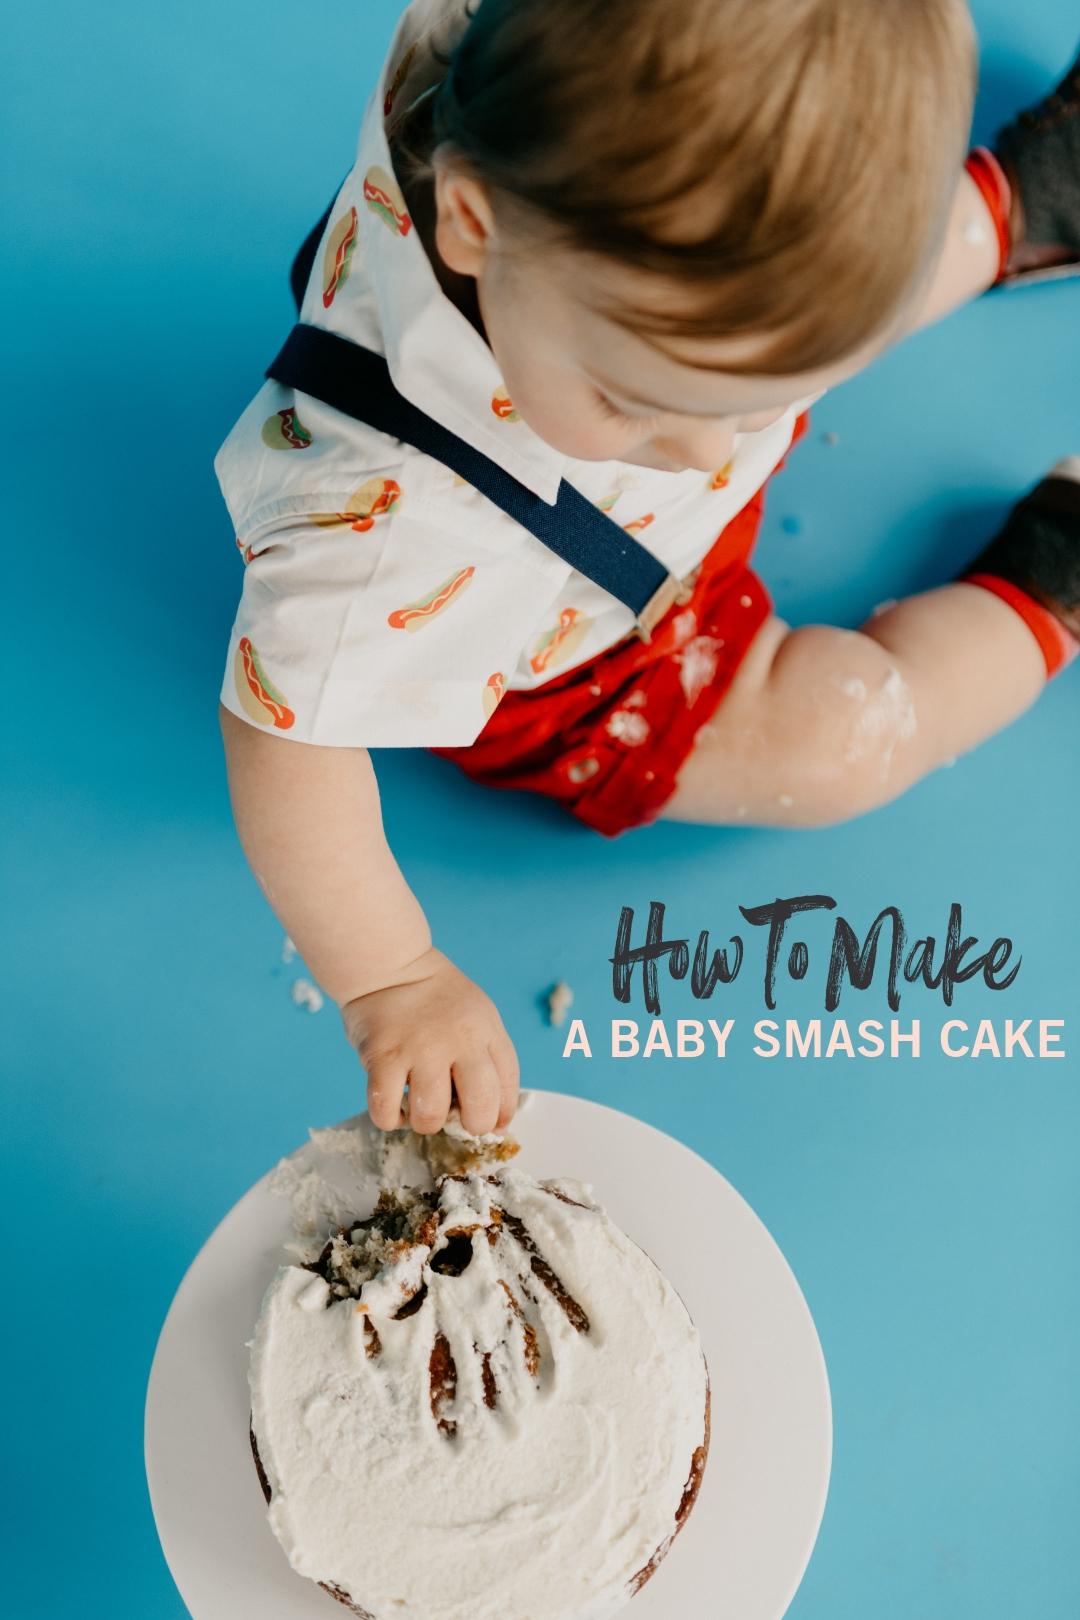 Marvelous How To Make A Baby Smash Cake A Simple 1St Birthday Party Sweetphi Funny Birthday Cards Online Inifodamsfinfo